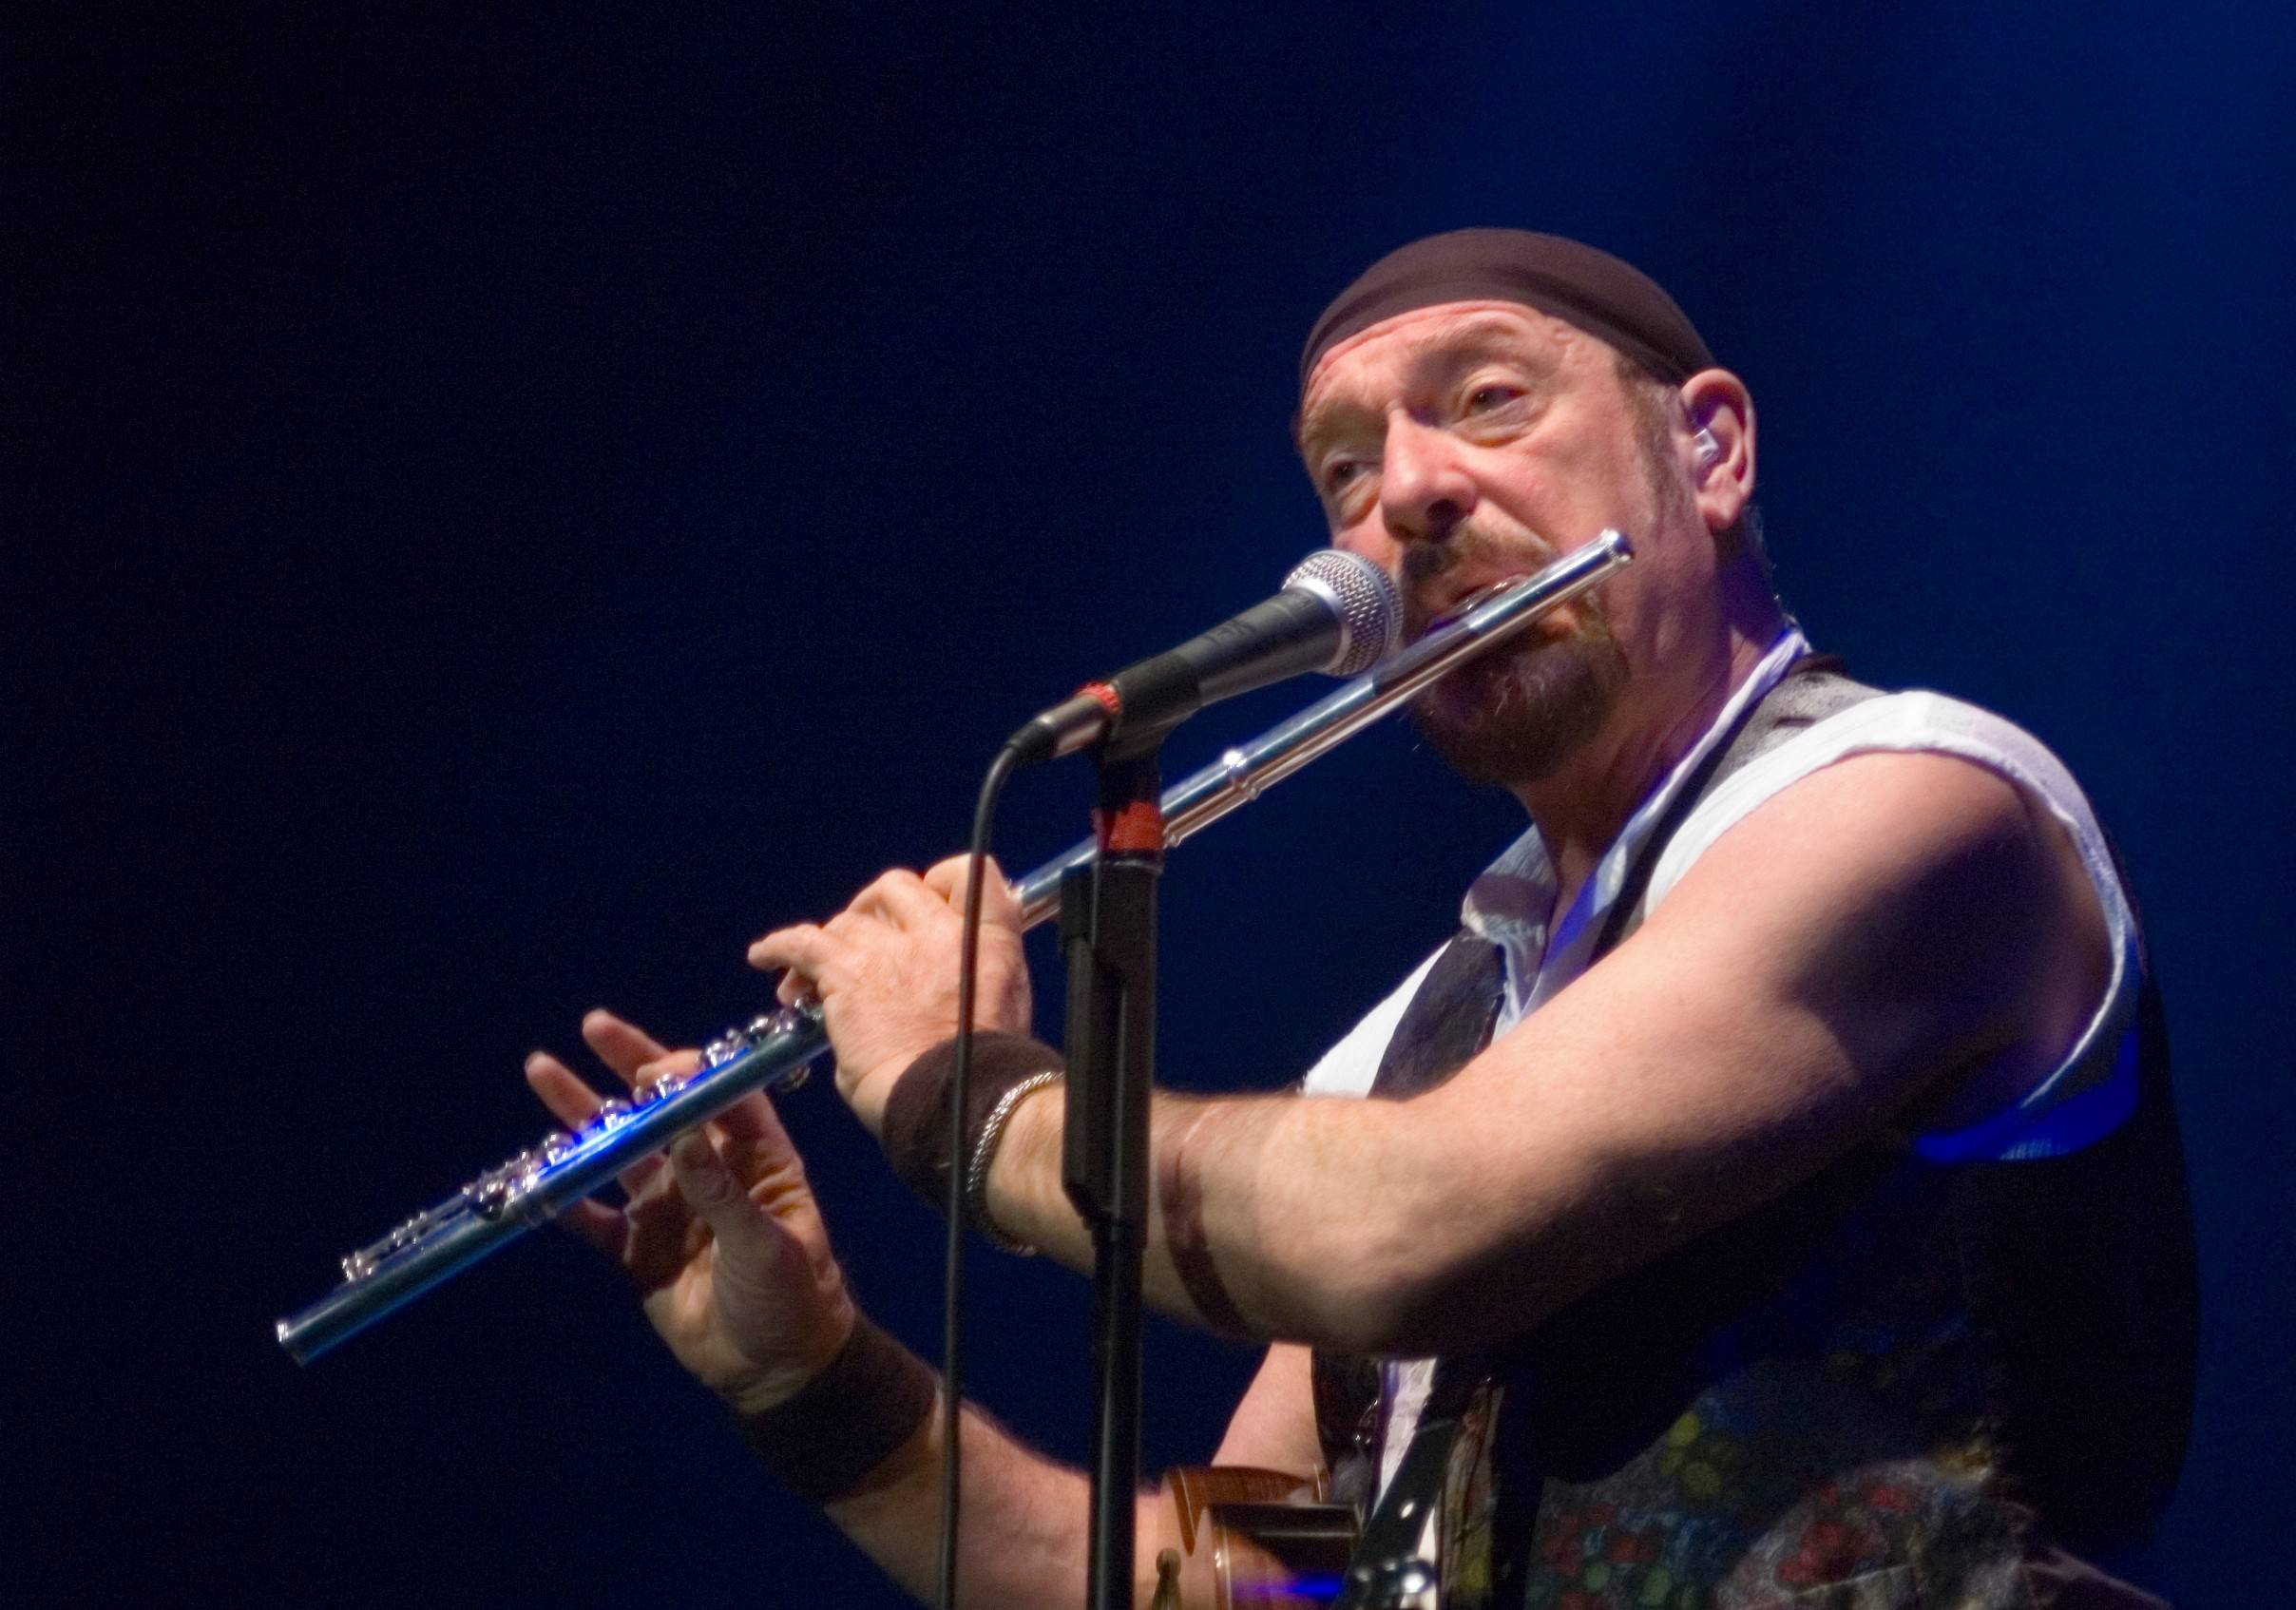 Ian Anderson will perform music from Jethro Tull and more during an Oct. 16 concert at Naperville's North Central College.